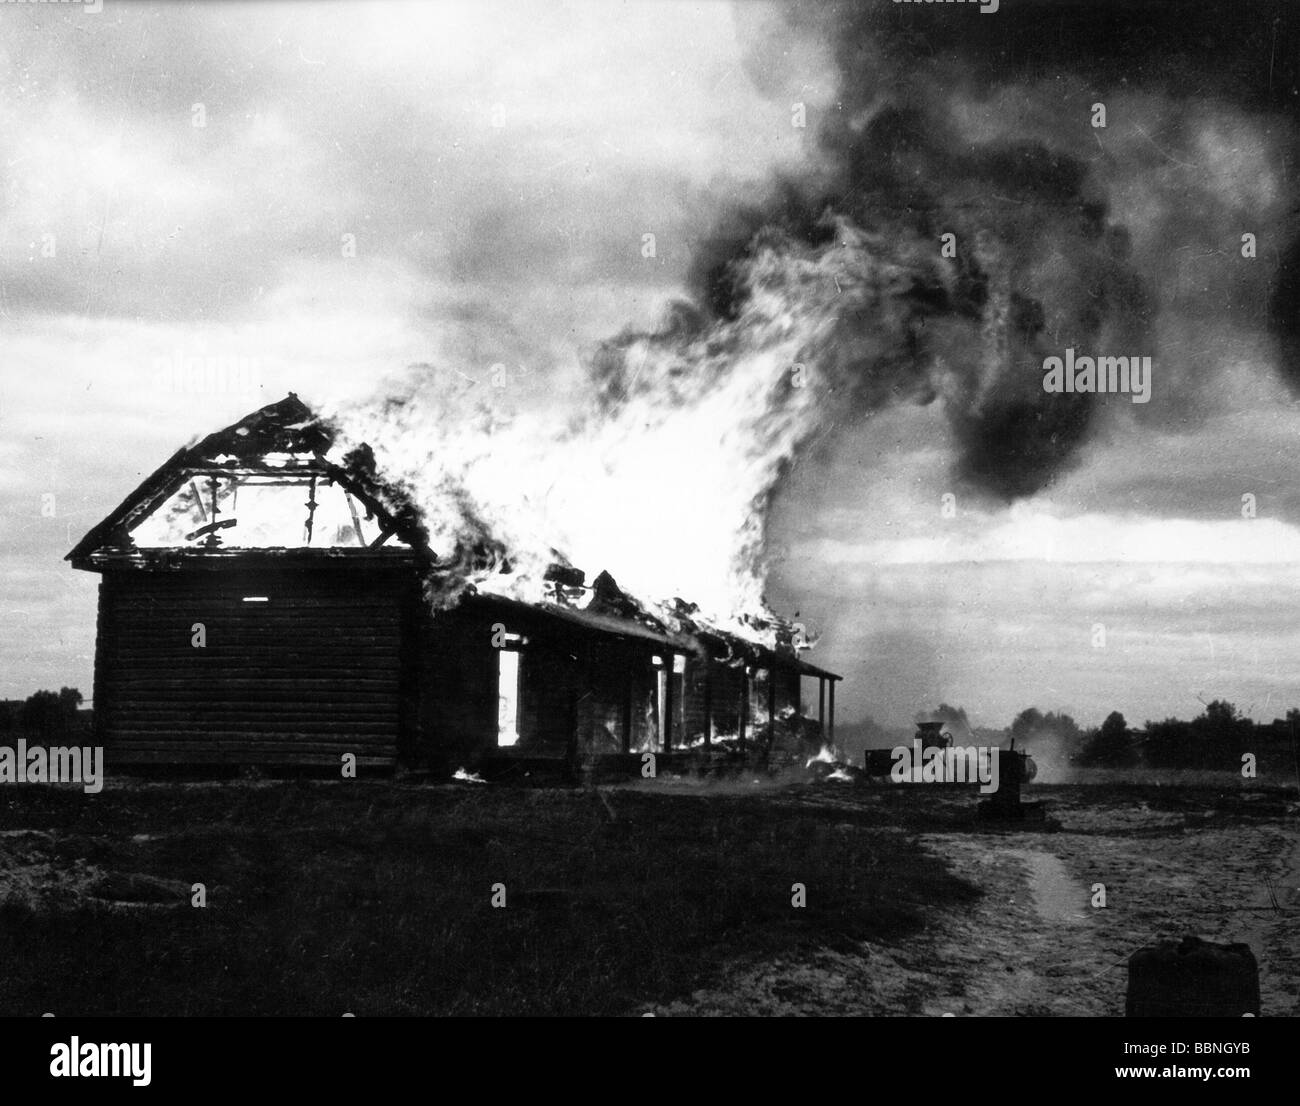 Events Second World War WWII Russia 1942 1943 Burning Farmhouse Circa Fire Destruction 20th Century Historic H